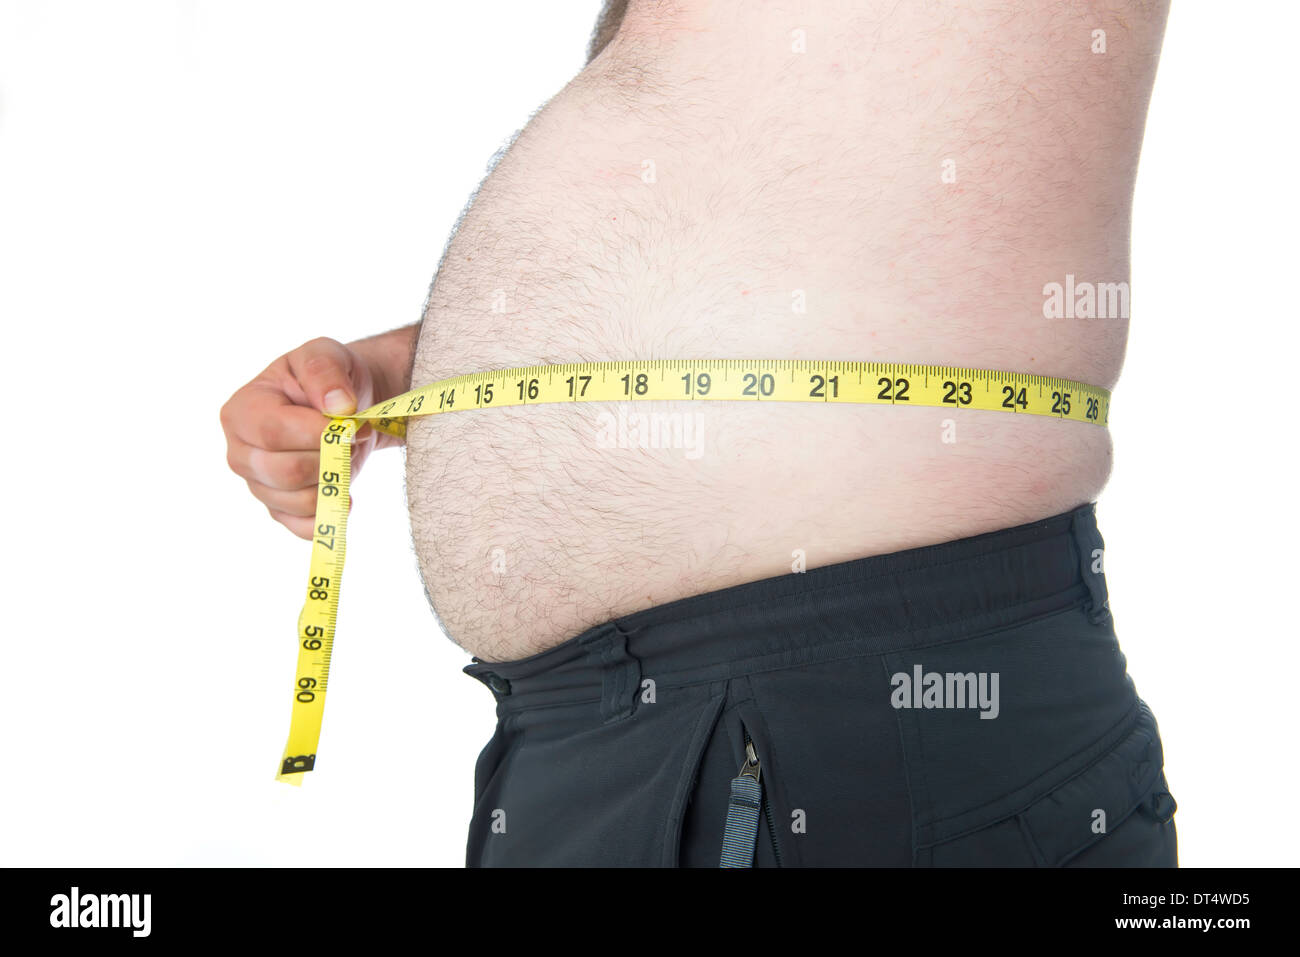 Fat Man With A Big Belly With A Tape Measure Stock Photo